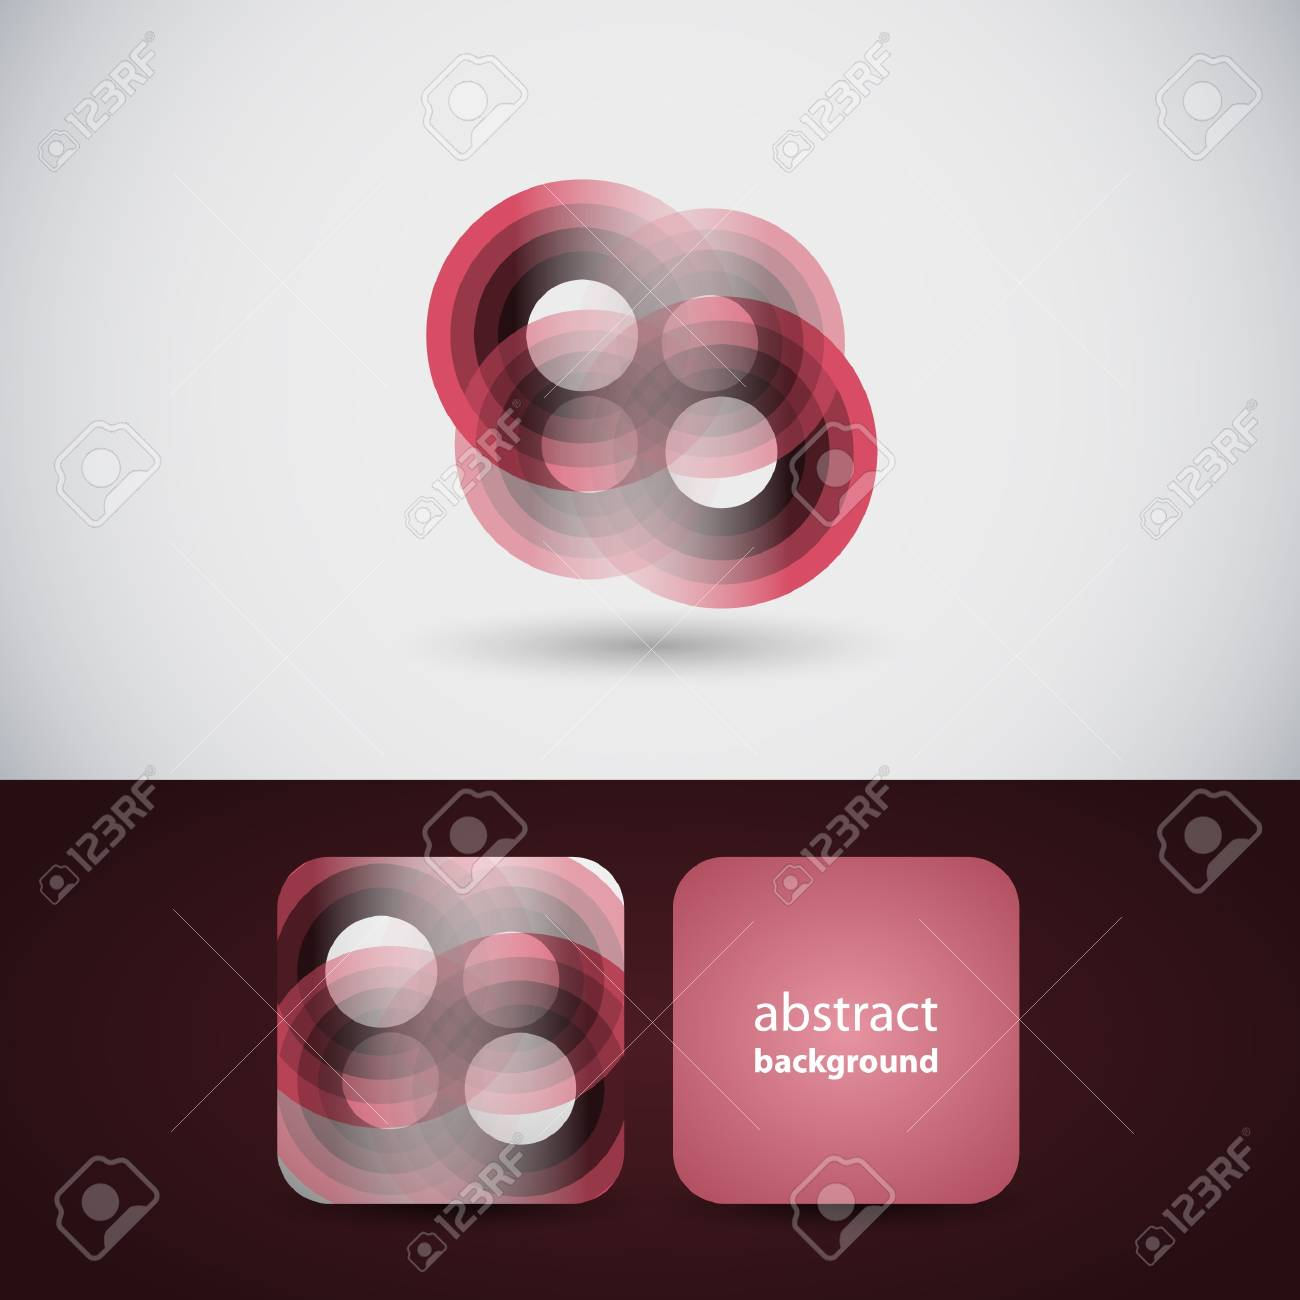 Abstract Flyer or Cover Design Stock Vector - 13801908